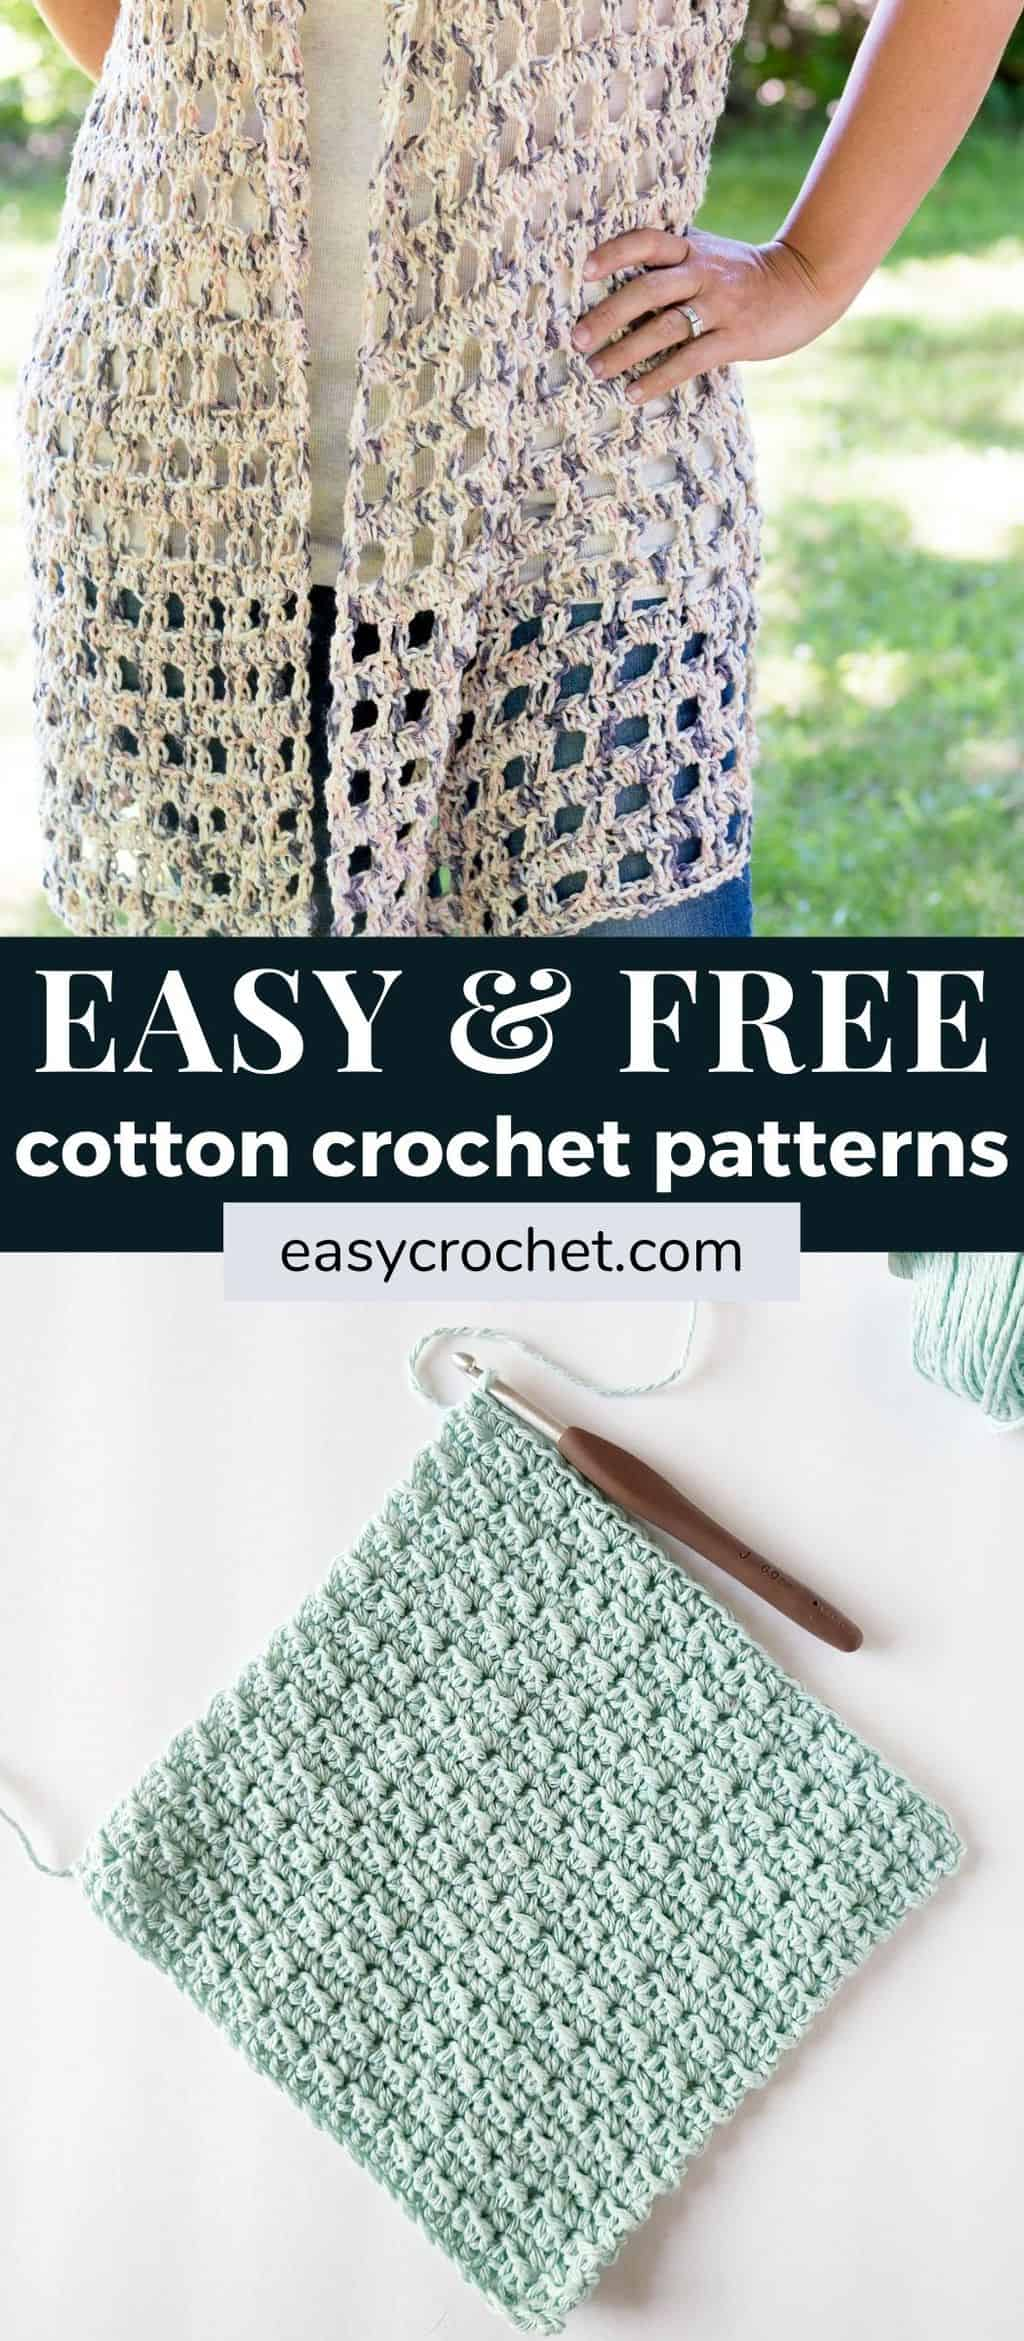 cotton yarn crochet patterns via @easycrochetcom